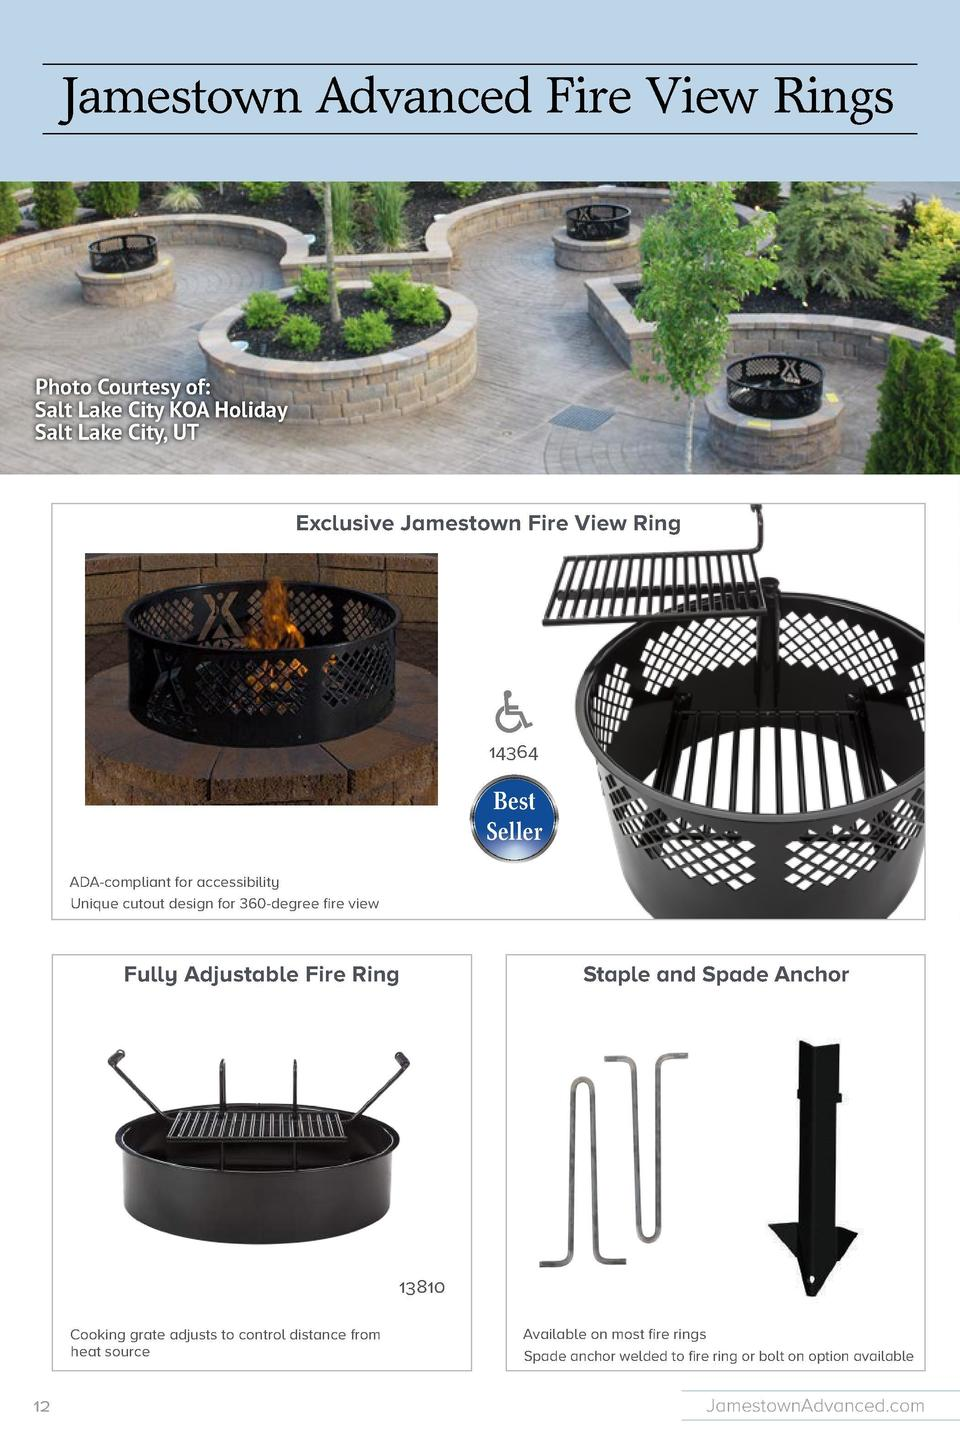 14354  Fire View Ring  Jamestown Advanced Fire View Rings  eter sizes available grate  14353  by 24 inches grate  Jamestow...